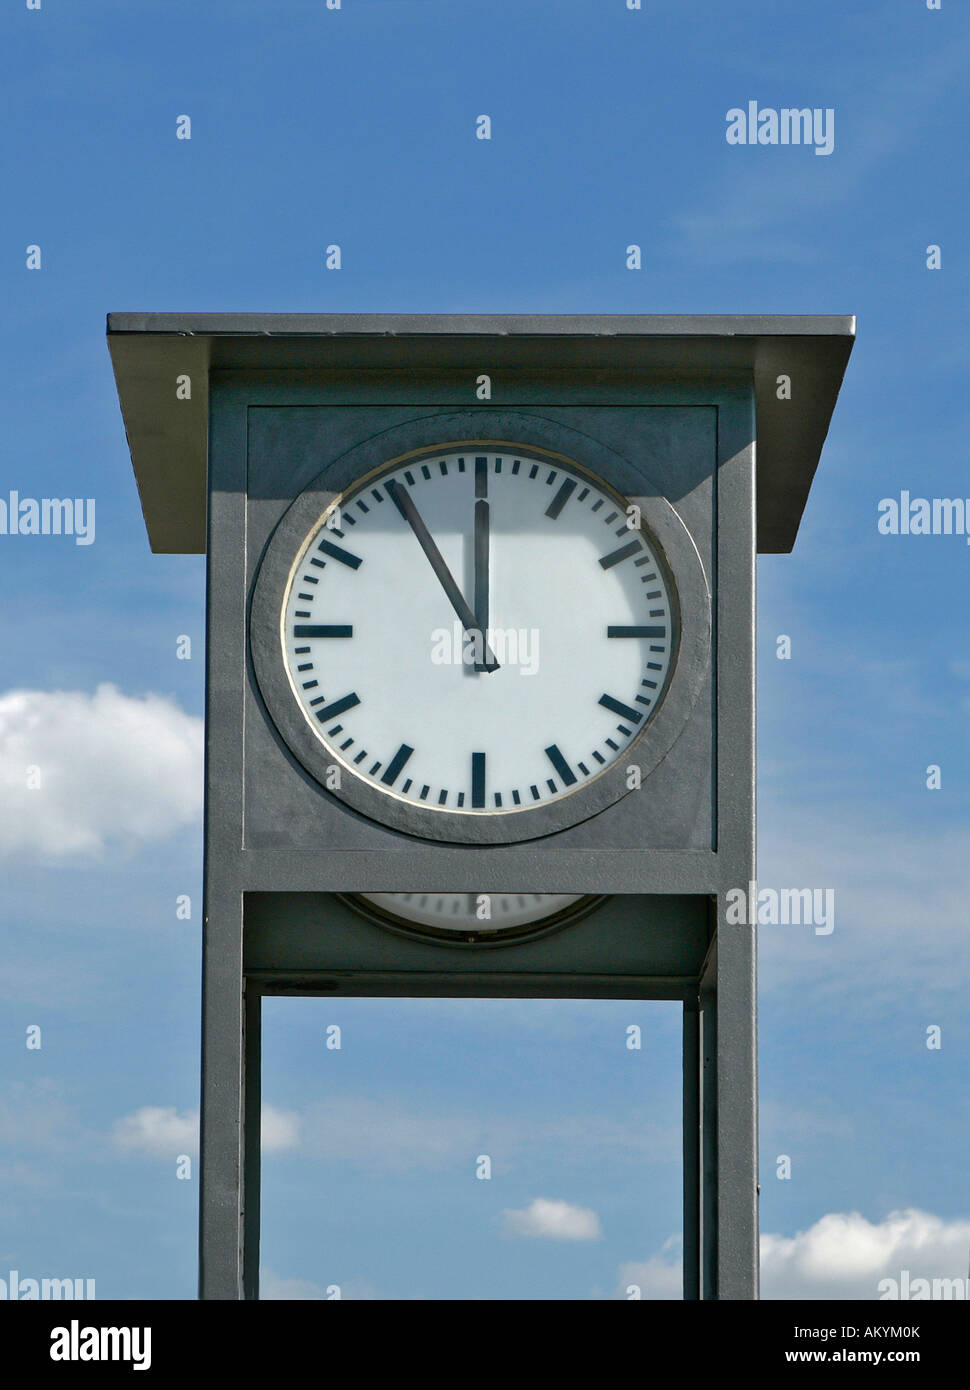 5 to 12 noon - Stock Image